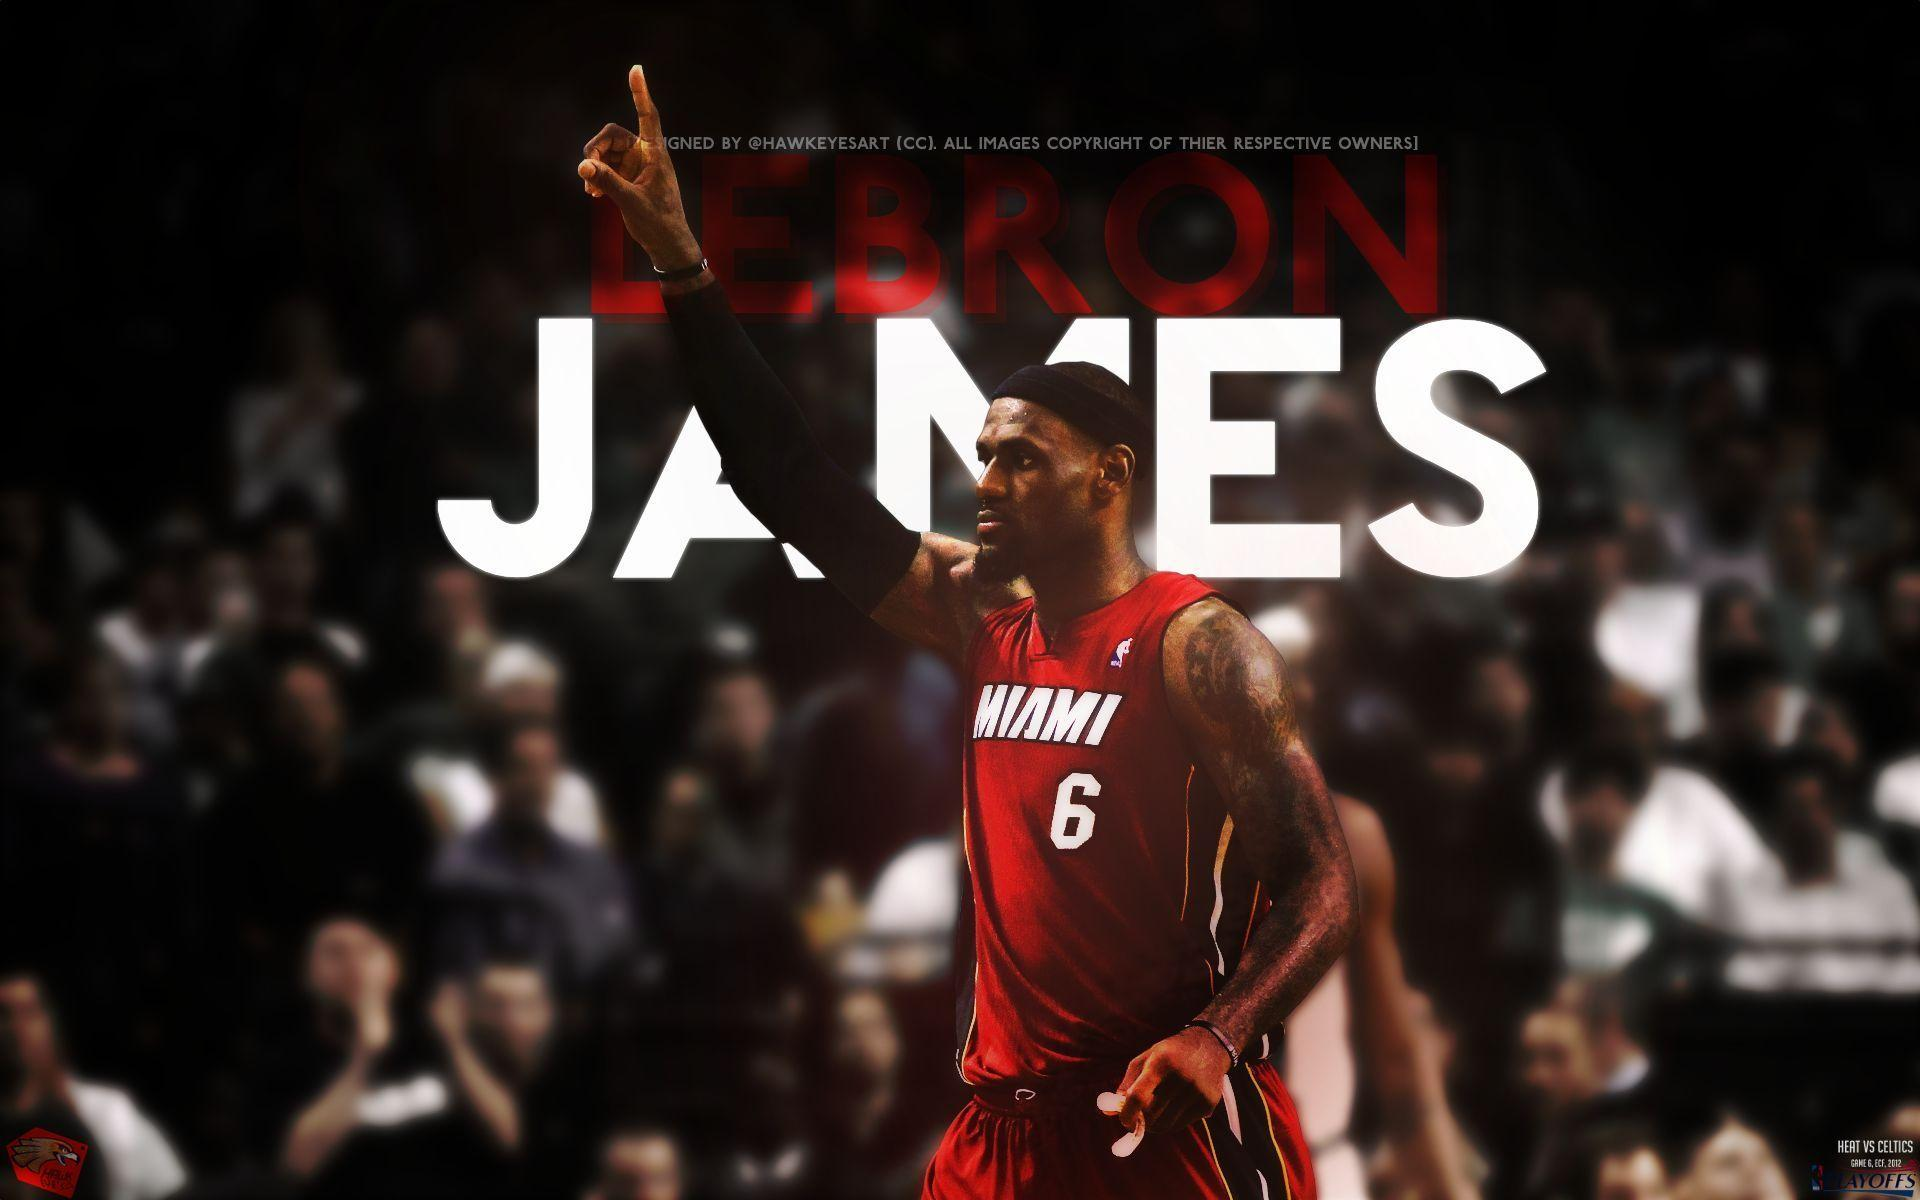 LeBron James desktop wallppaers for your Tablet or PC, Mac